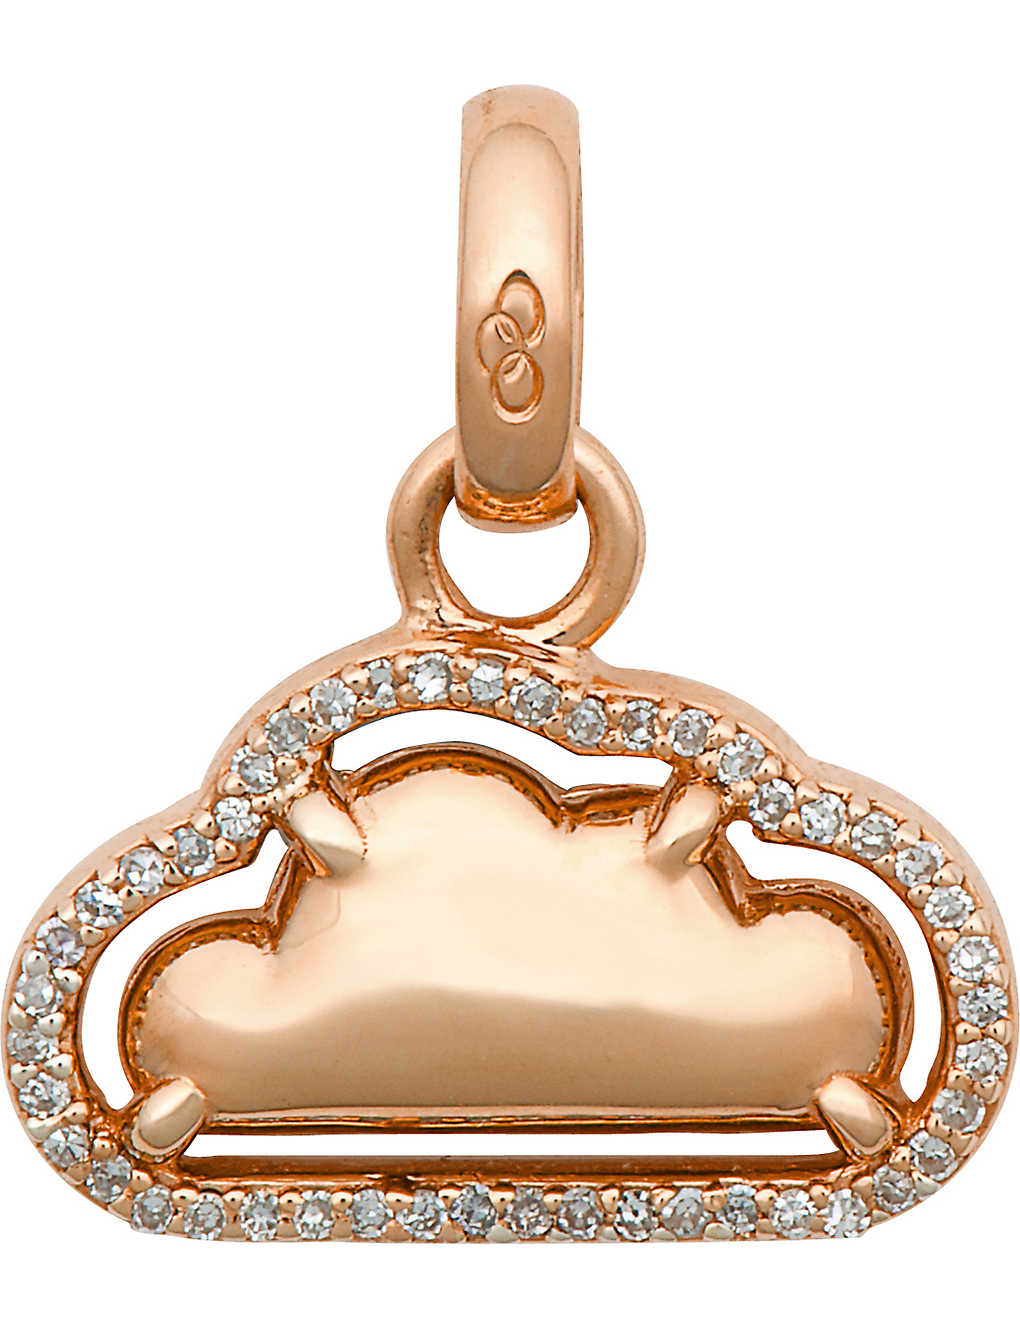 0f1328dc8794c LINKS OF LONDON - Silver Lining 18-carat rose gold charm ...